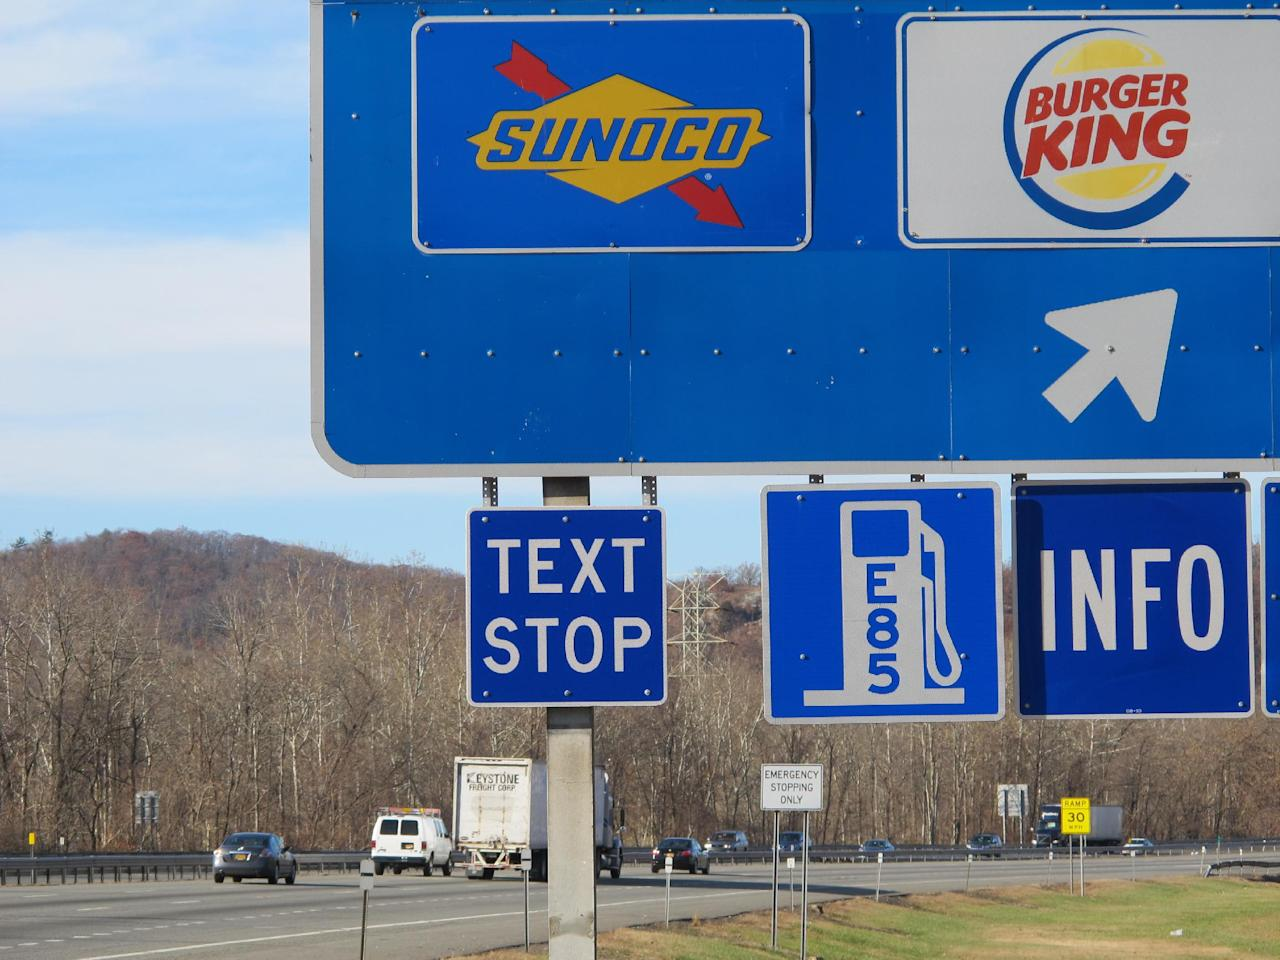 """A new """"text stop"""" notification is seen on a sign for a service area on the New York State Thruway in Sloatsburg, N.Y., on Thursday, Nov. 14, 2013. A state crackdown on texting while driving includes designating many pull-off areas as text stops. (AP Photo/Jim Fitzgerald)"""